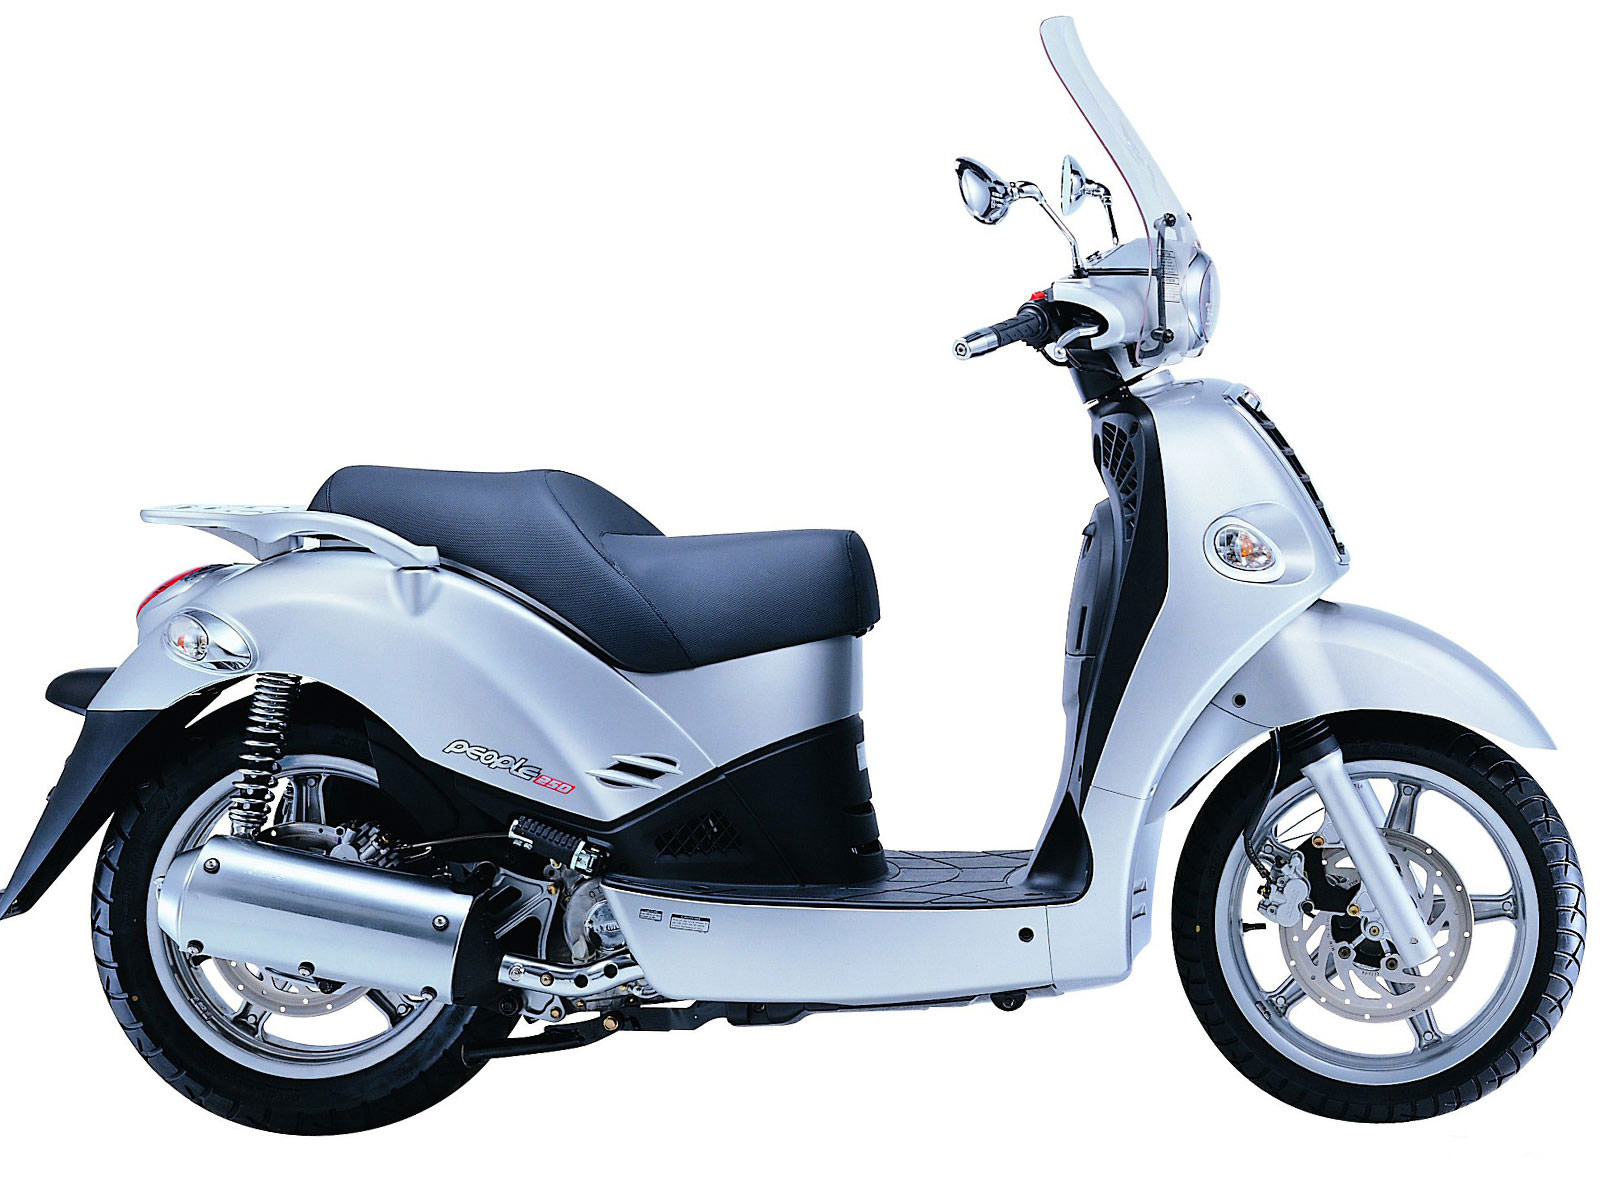 scooter picture 2005 kymco people 250 accident lawyers information. Black Bedroom Furniture Sets. Home Design Ideas